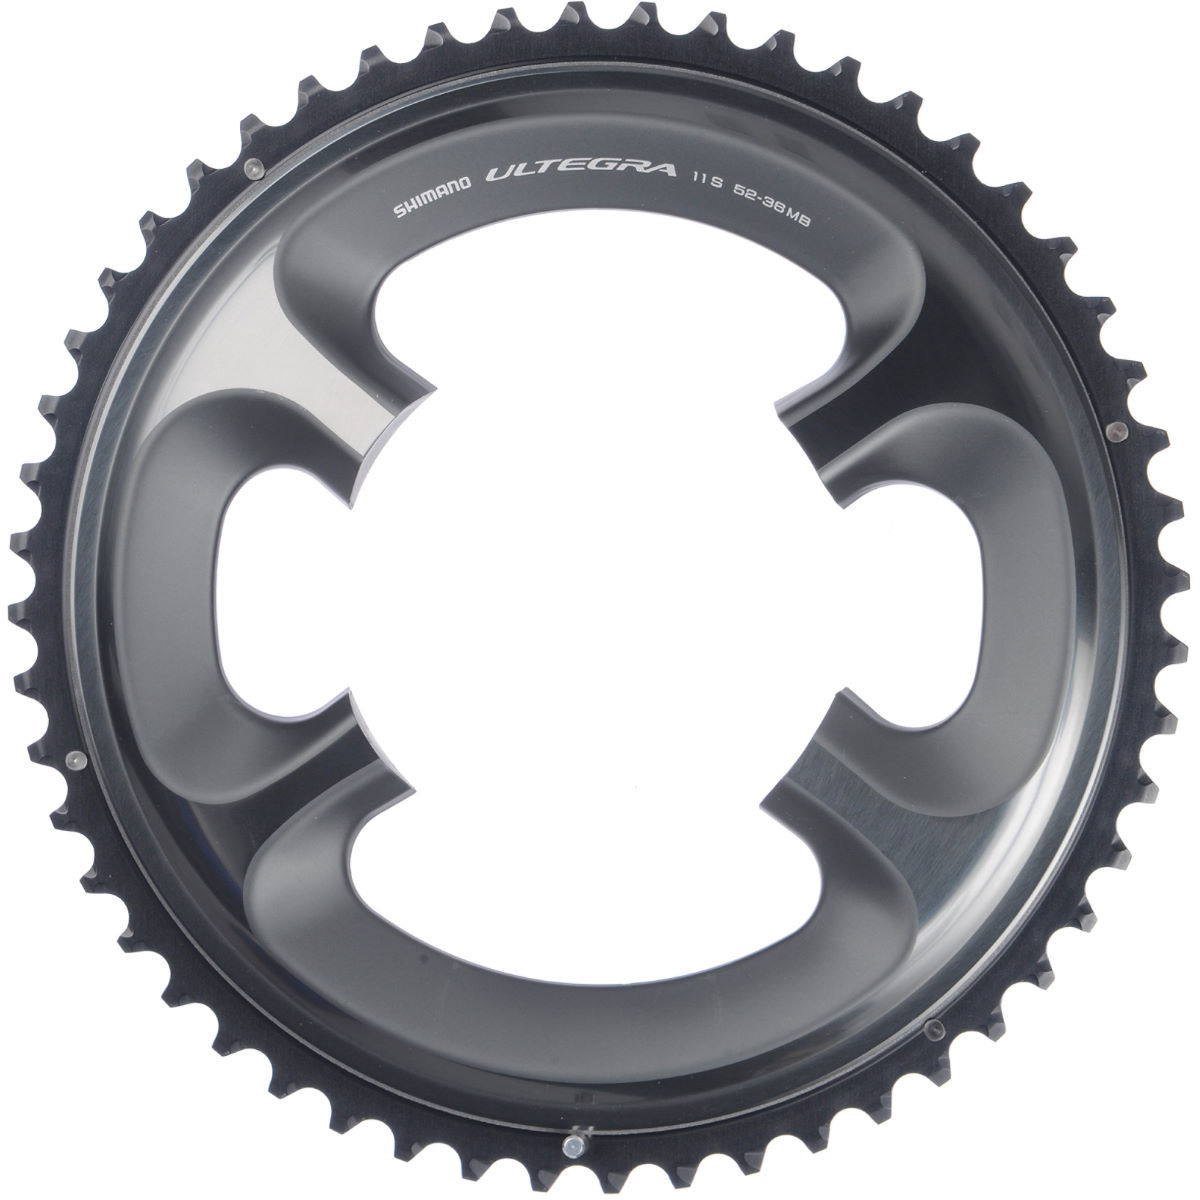 Plateau externe Shimano Ultegra FC-6800 - 52 Tooth (52-36) Gris